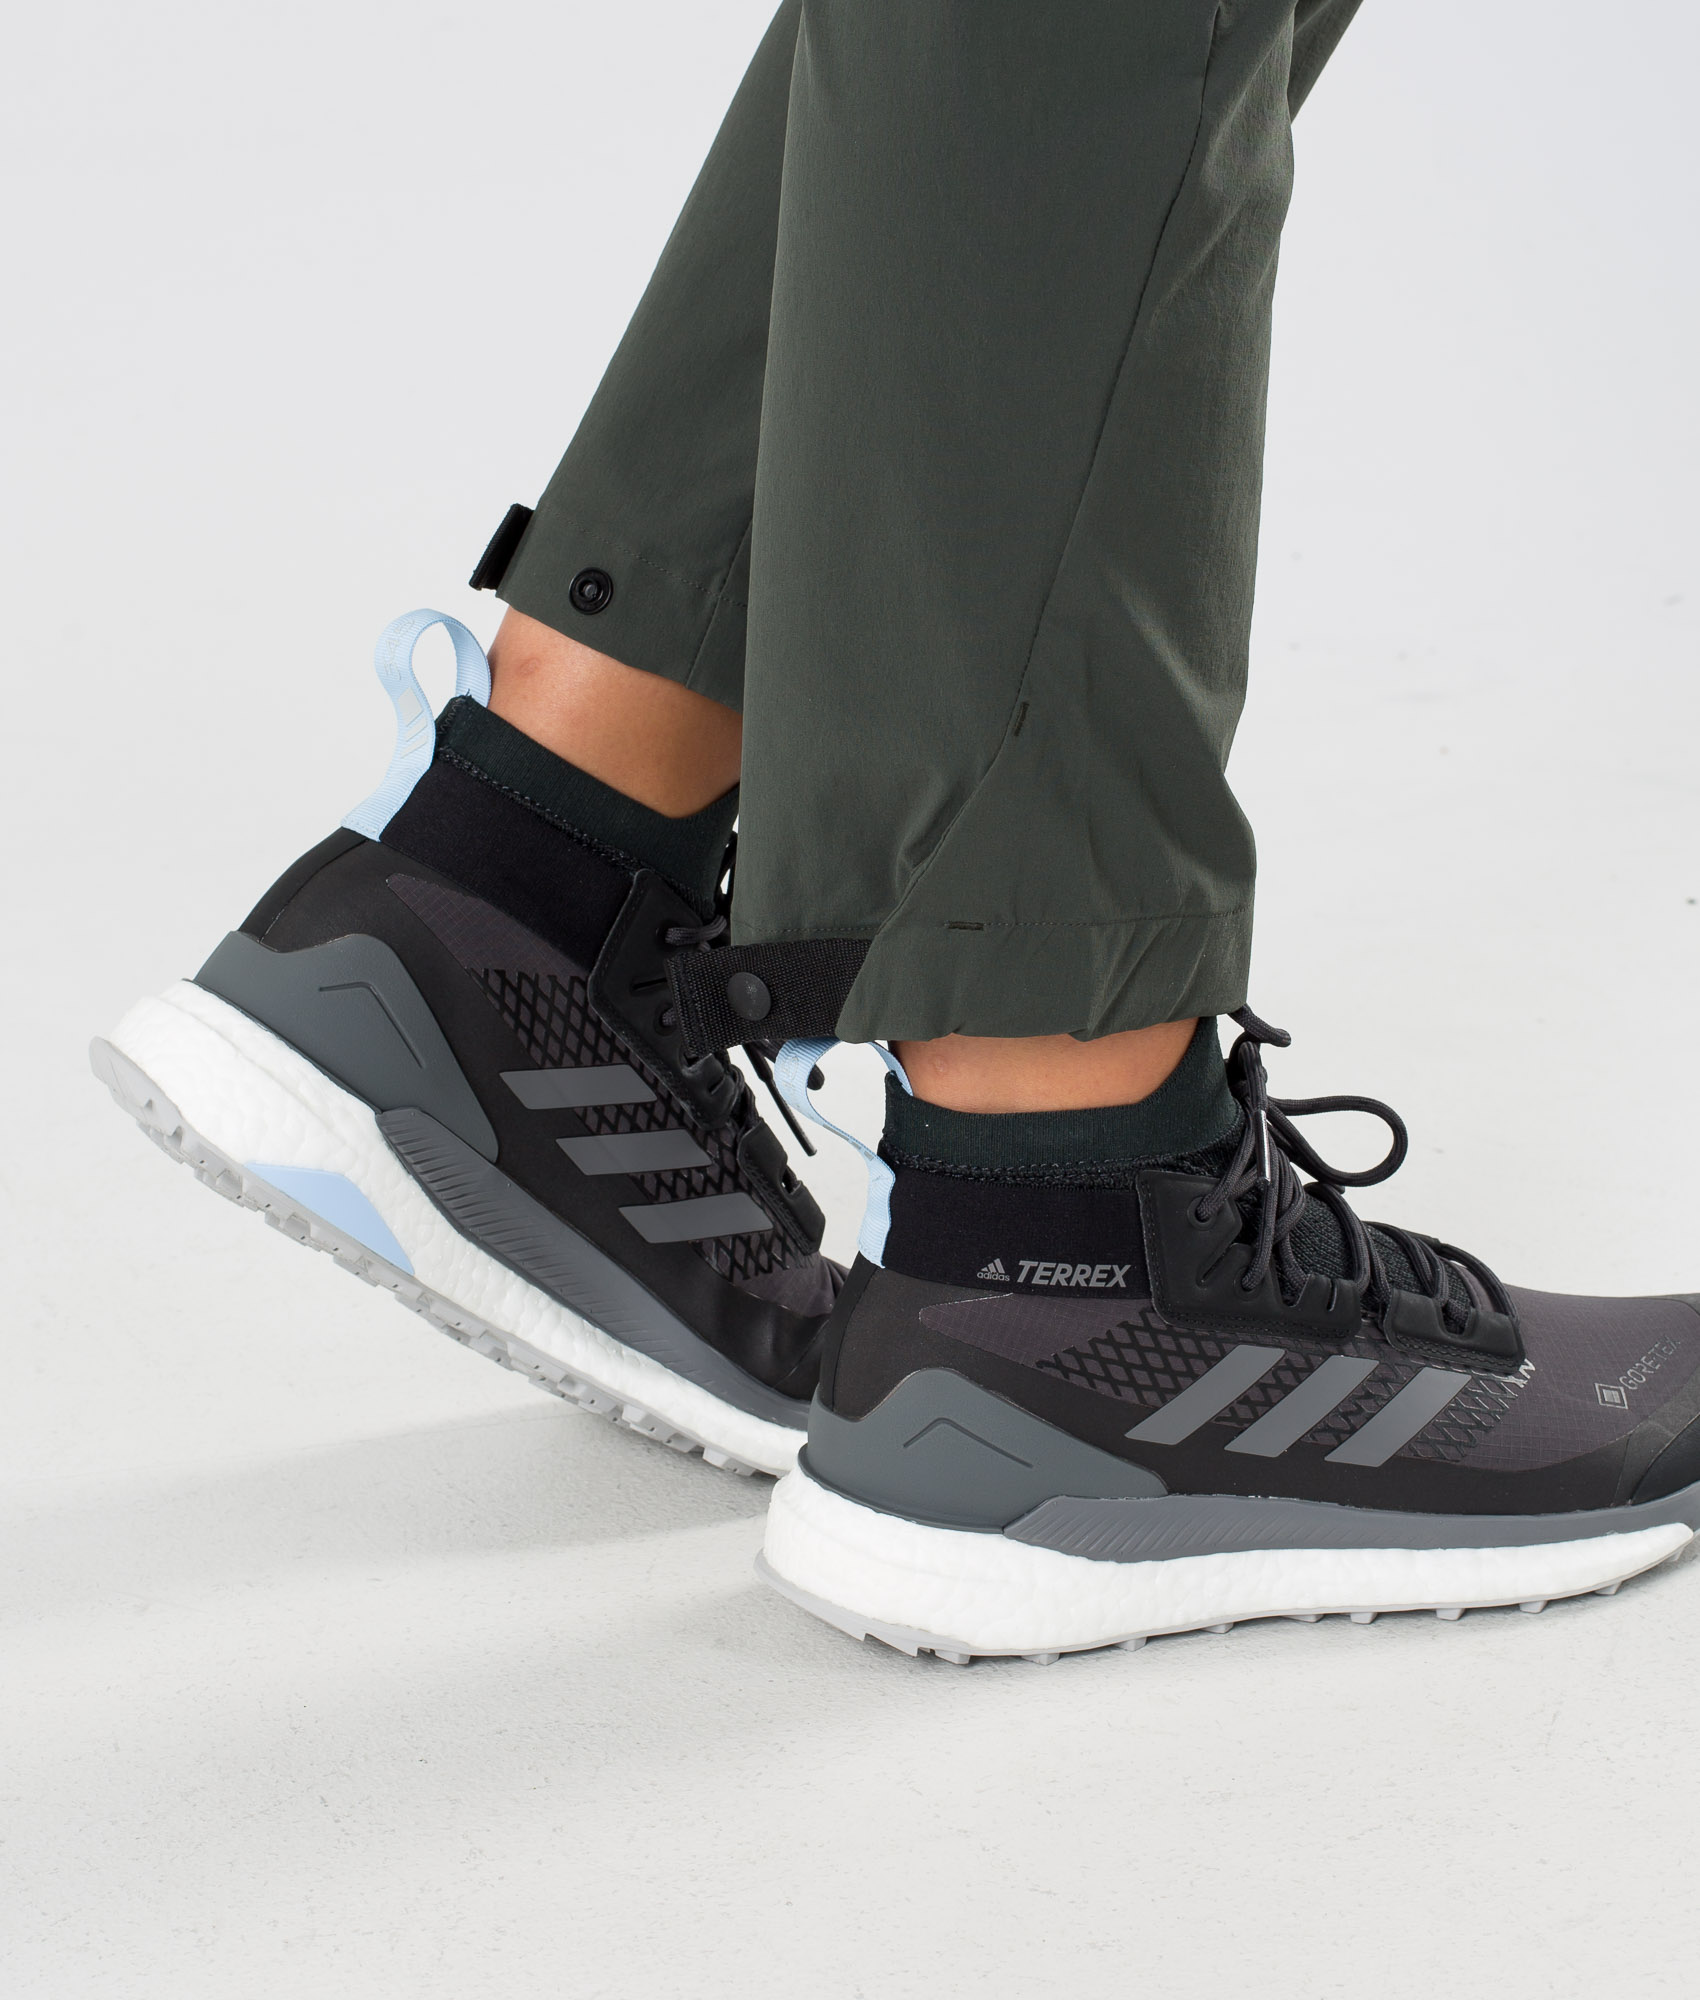 Adidas Terrex Hike Turbukse Legend Earth